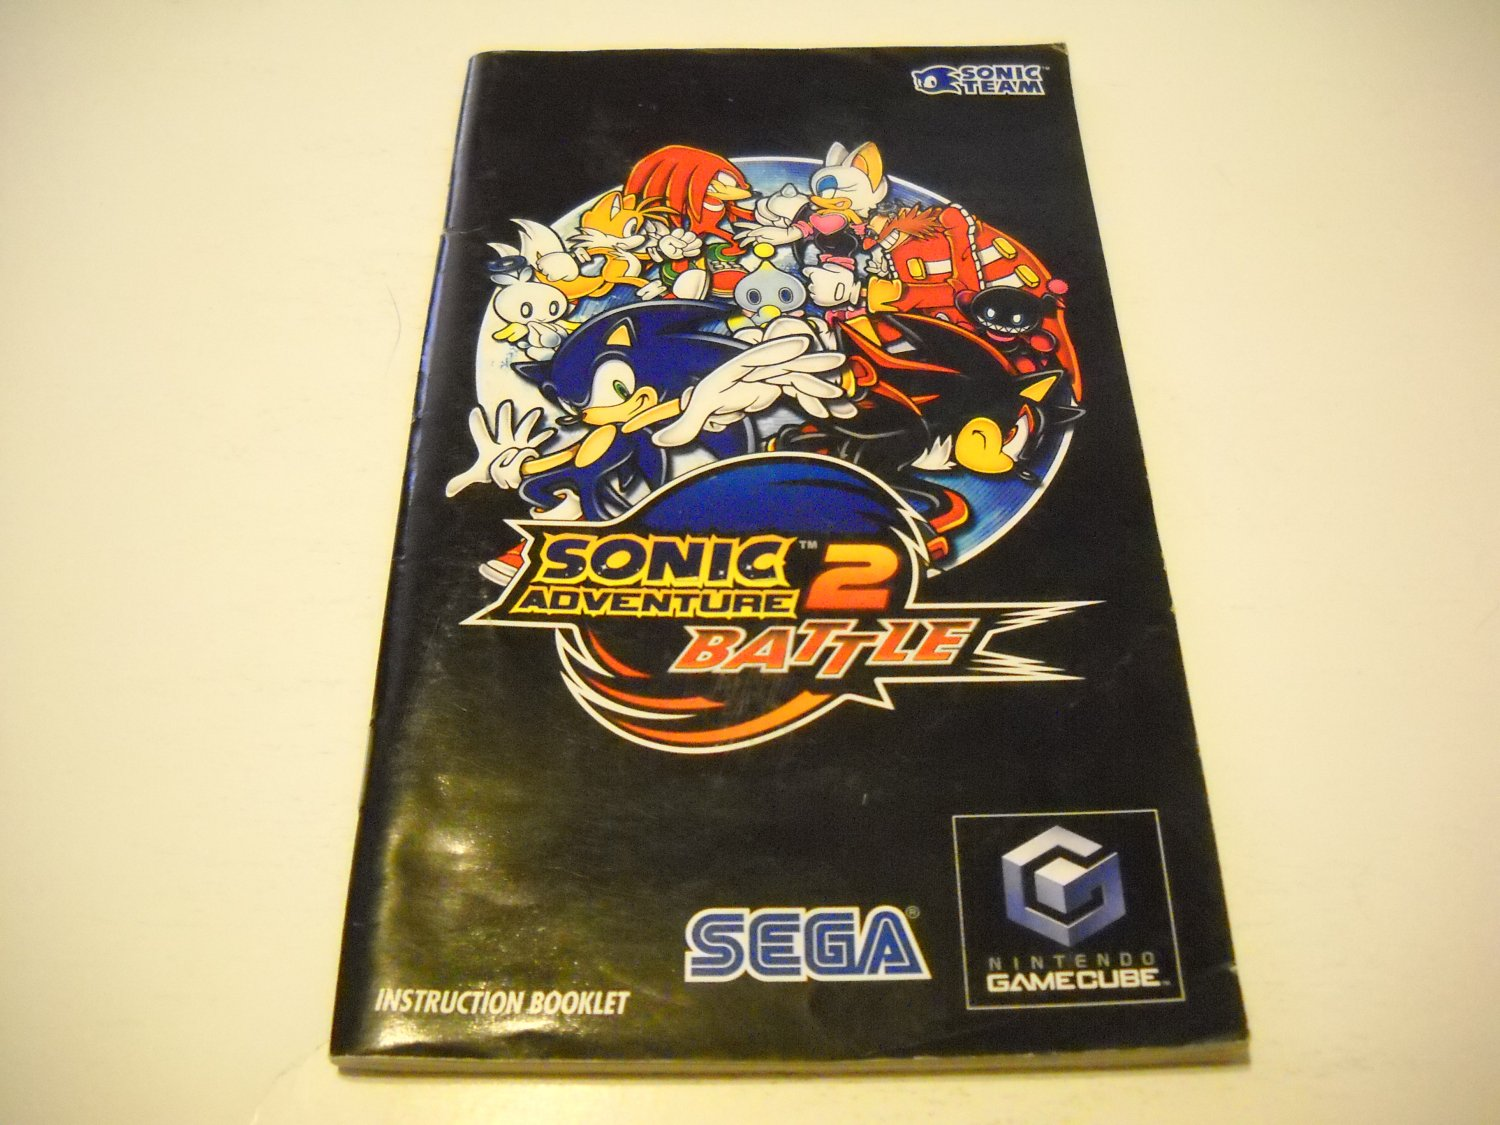 Manual ONLY ~  for Sonic Adventure 2 Battle   Gamecube